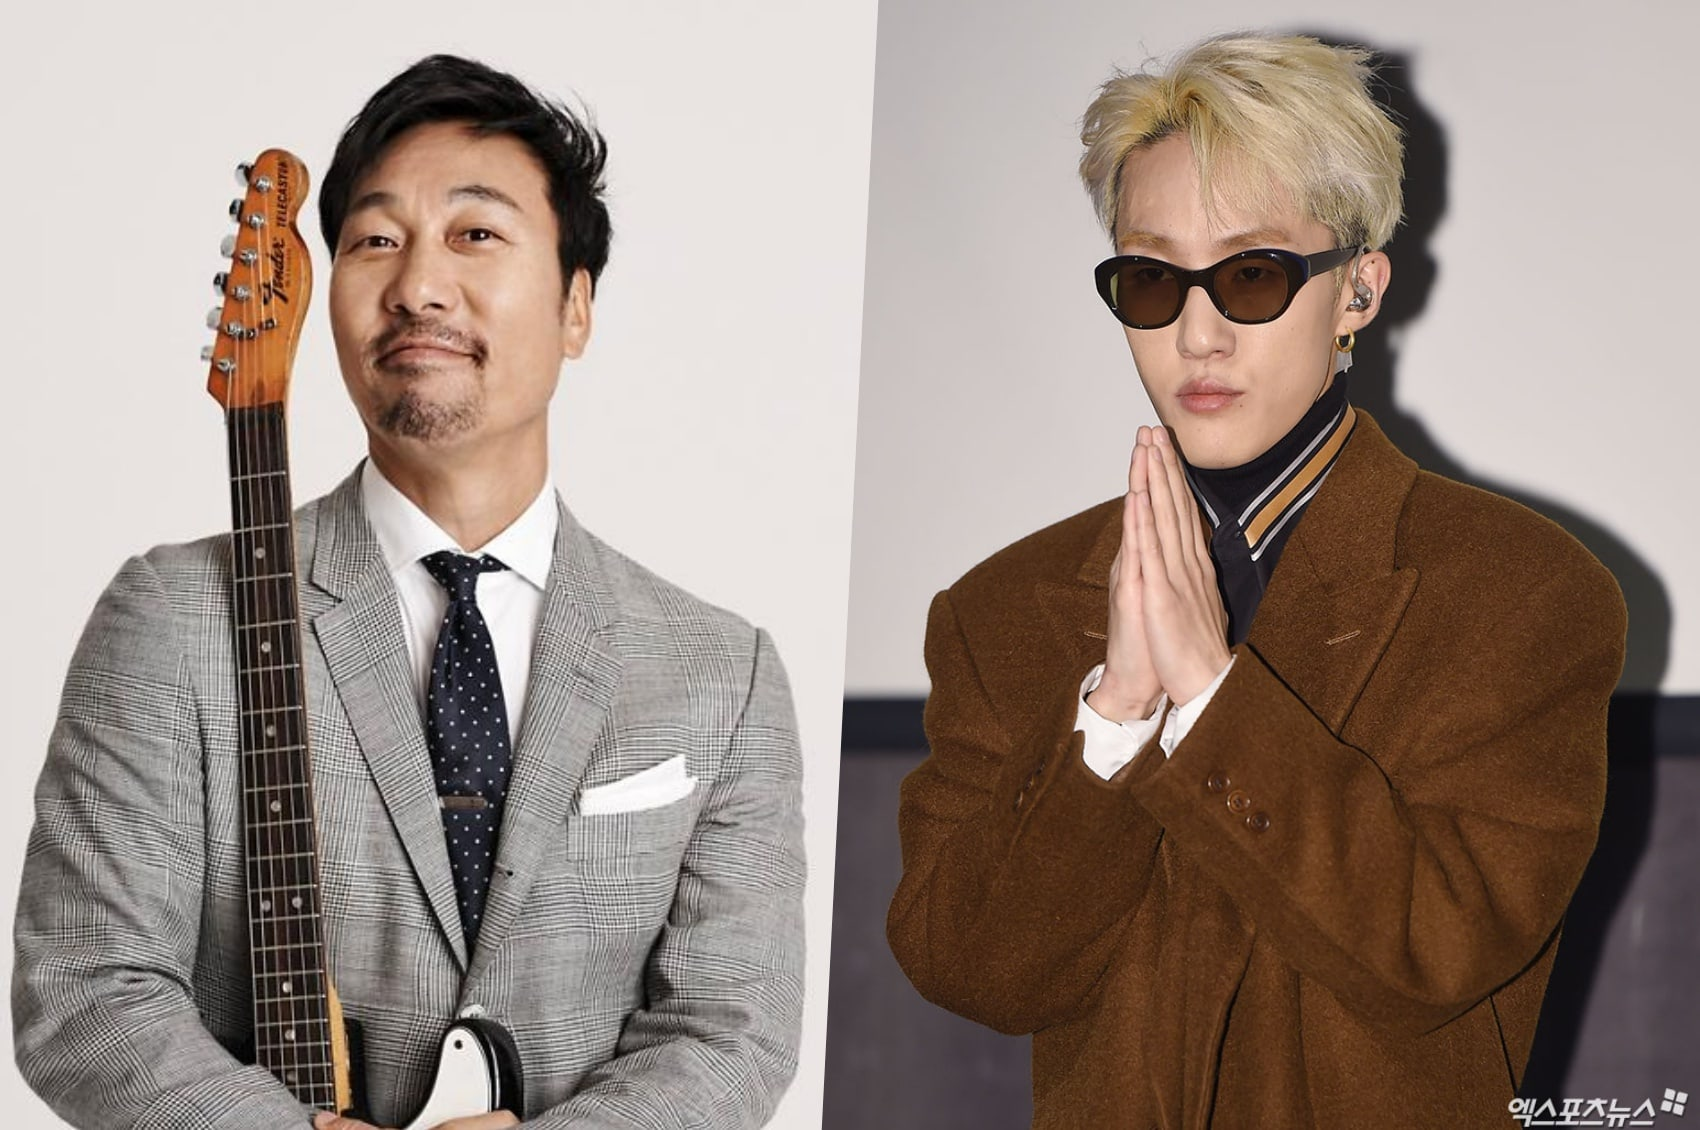 Zion.T Talks About His Collaboration With Lee Moon Sae And His Hopes To Appear On More Variety Shows